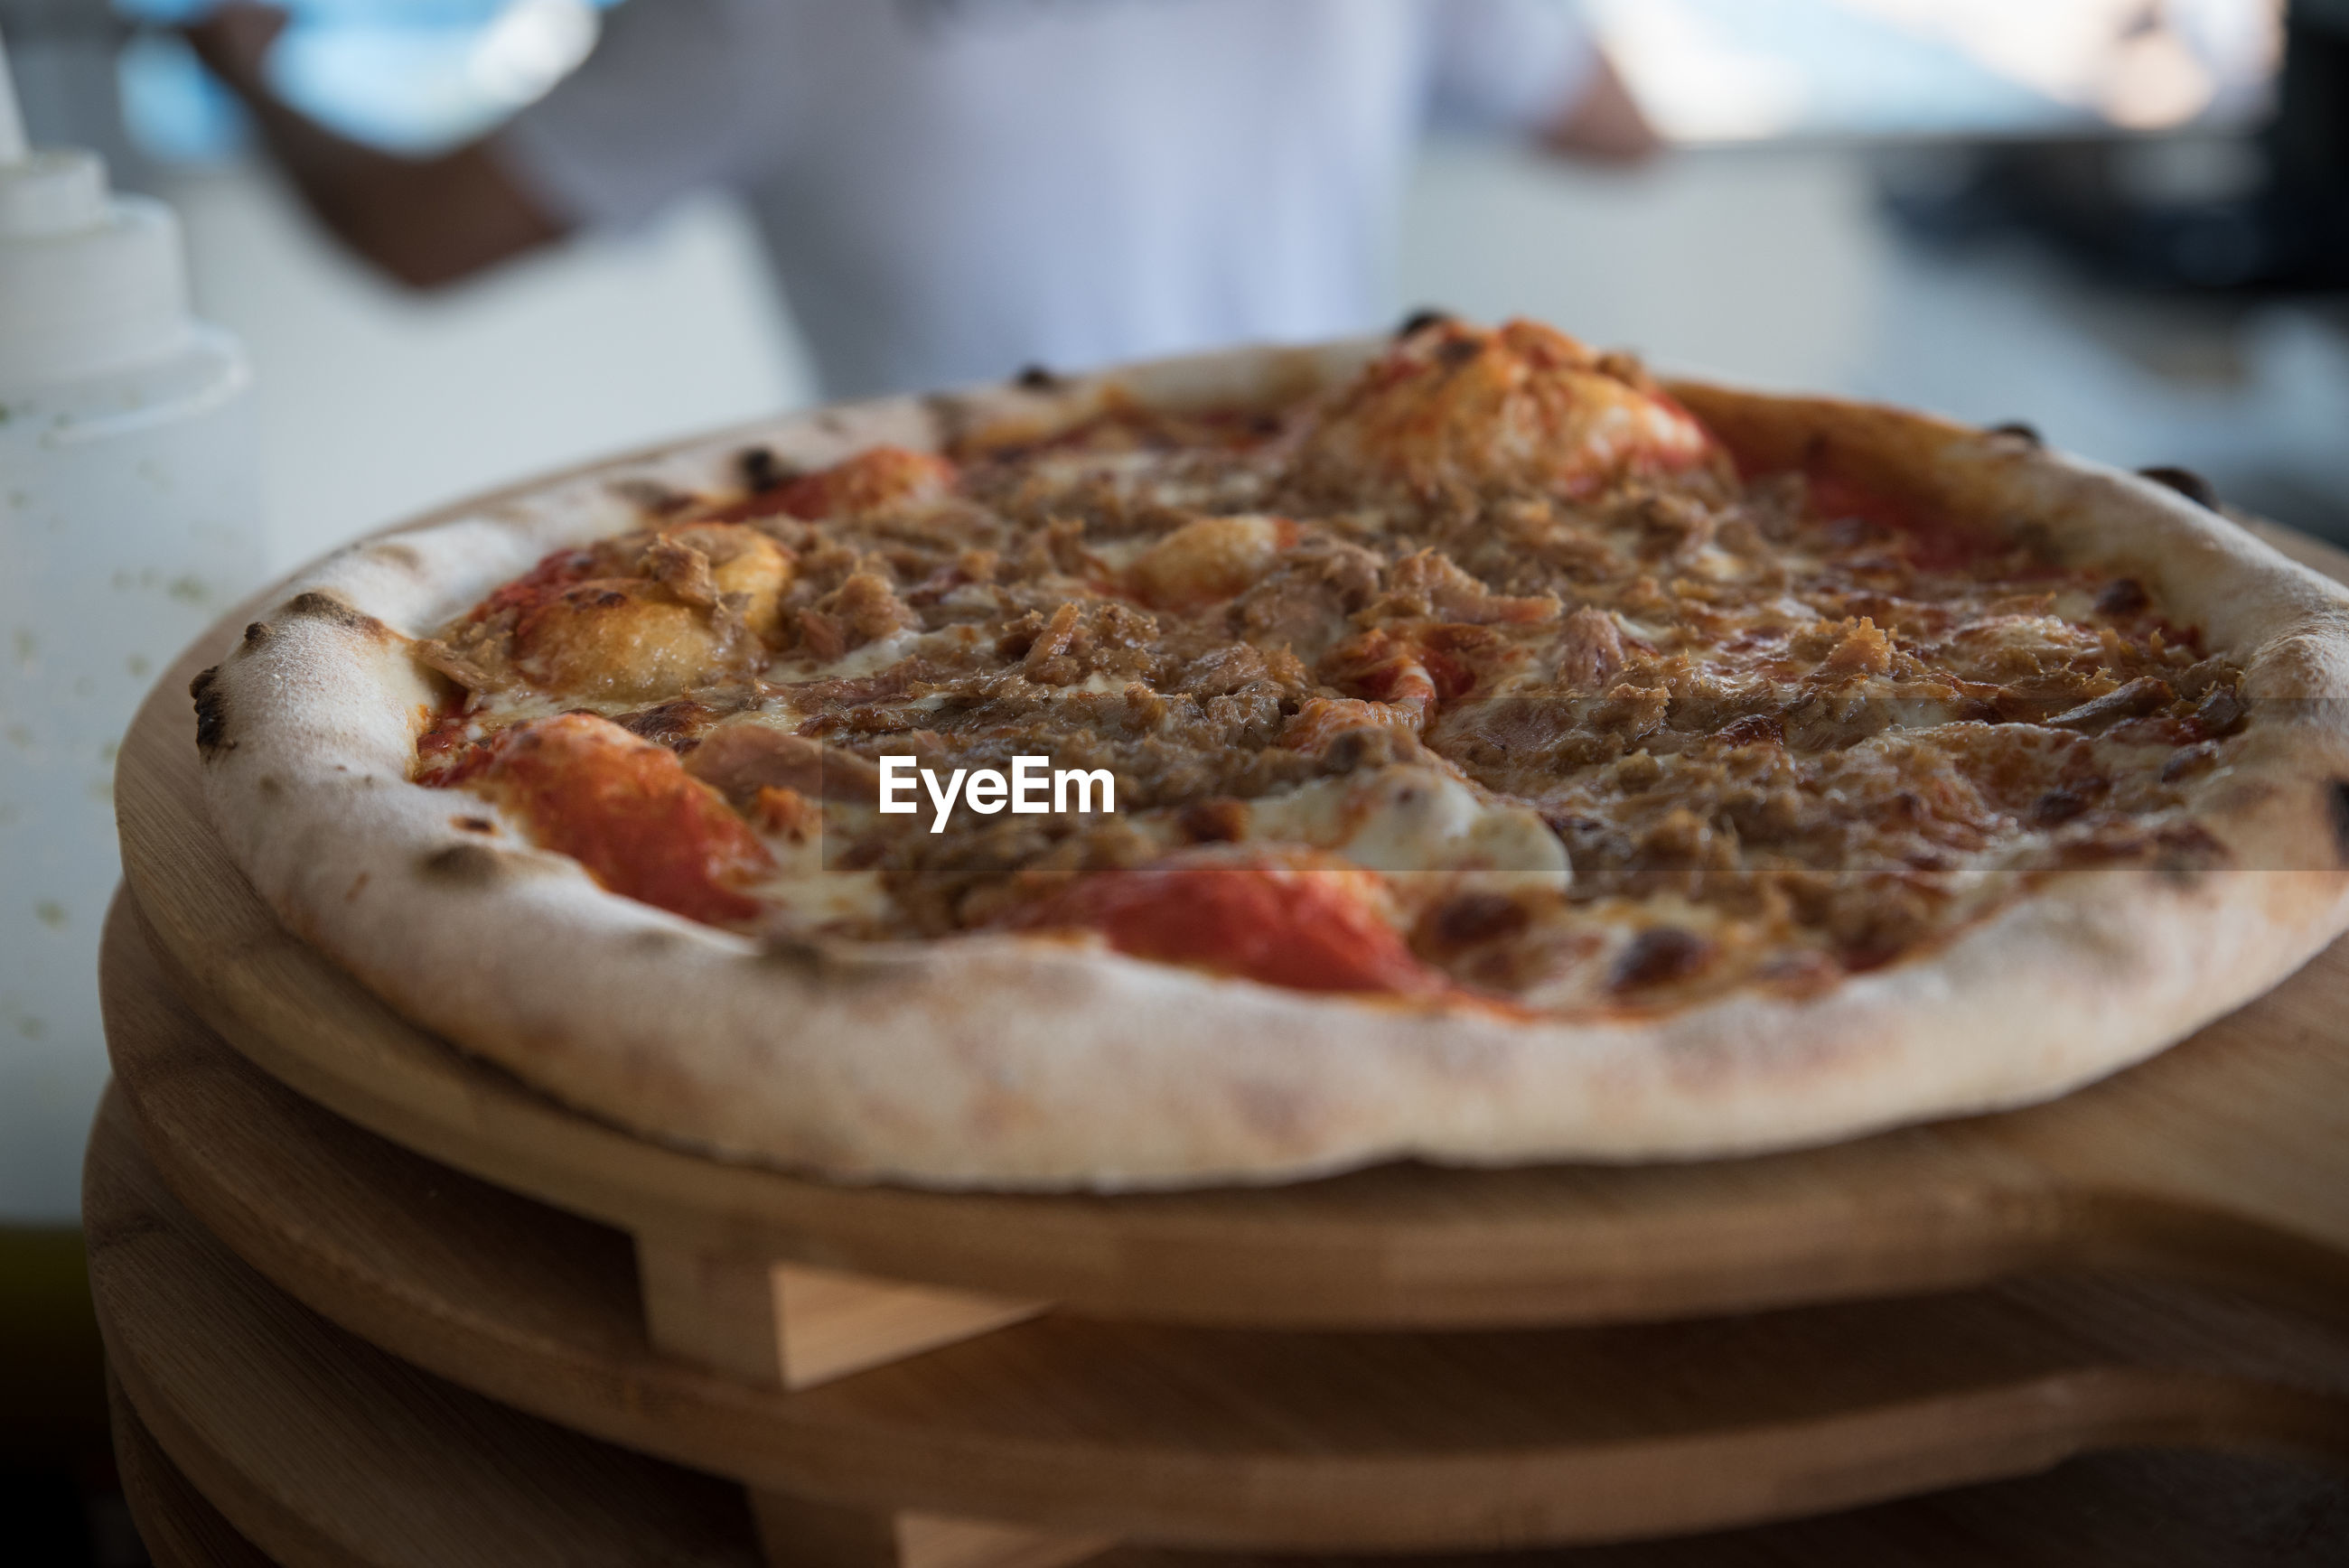 Close-up of pizza served in plate